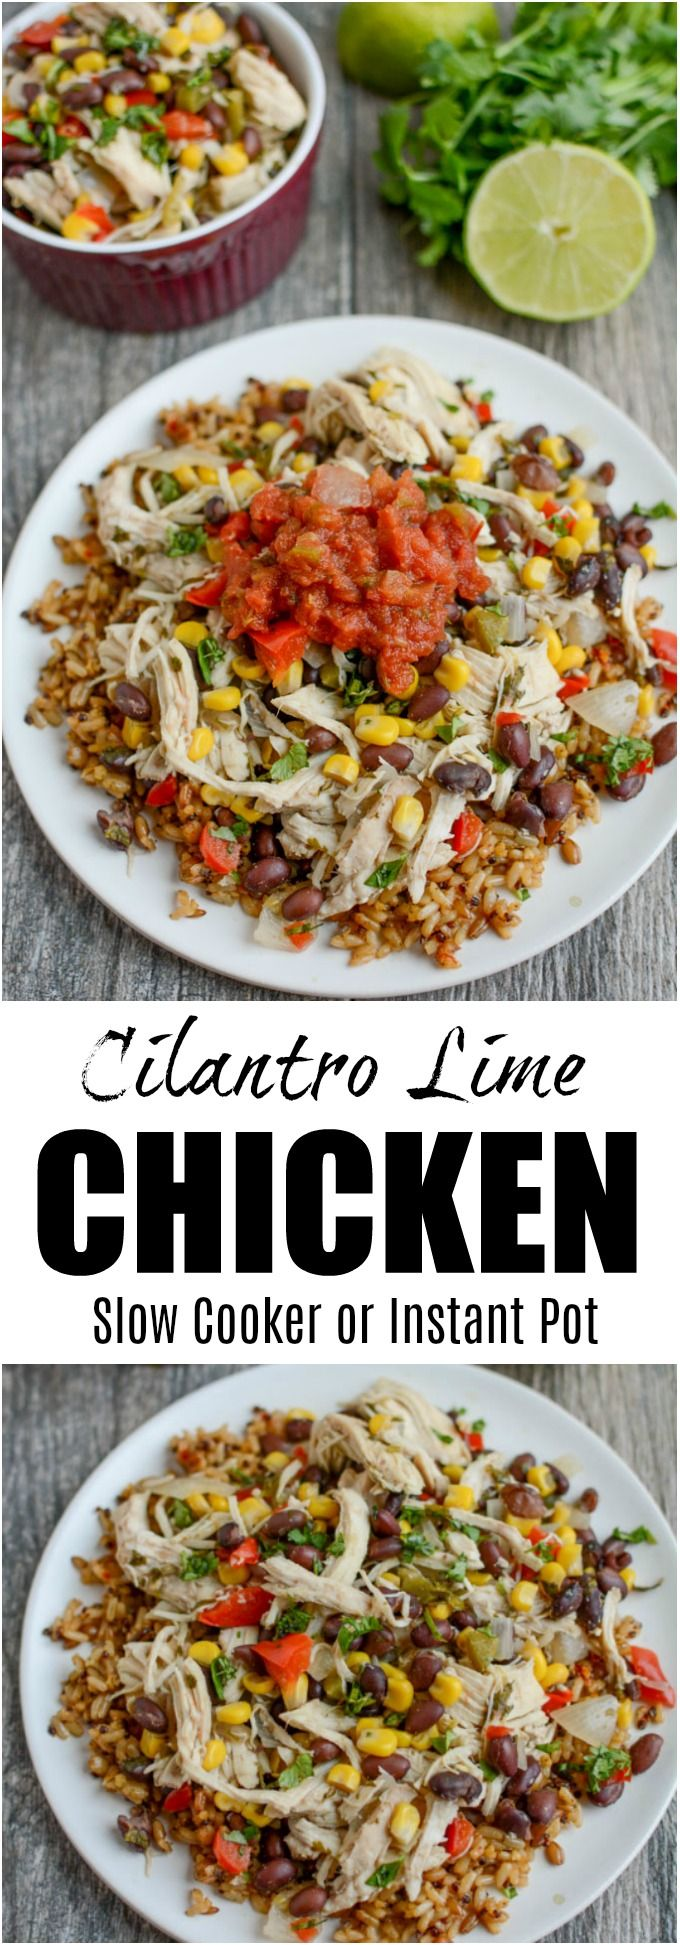 This Cilantro Lime Chicken is the perfect healthy dinner recipe and can be made in the slow cooker or the Instant Pot. Serve it over rice or as a filling for tacos. You can even prep it ahead of time and freeze until you need it. via @lclivingston